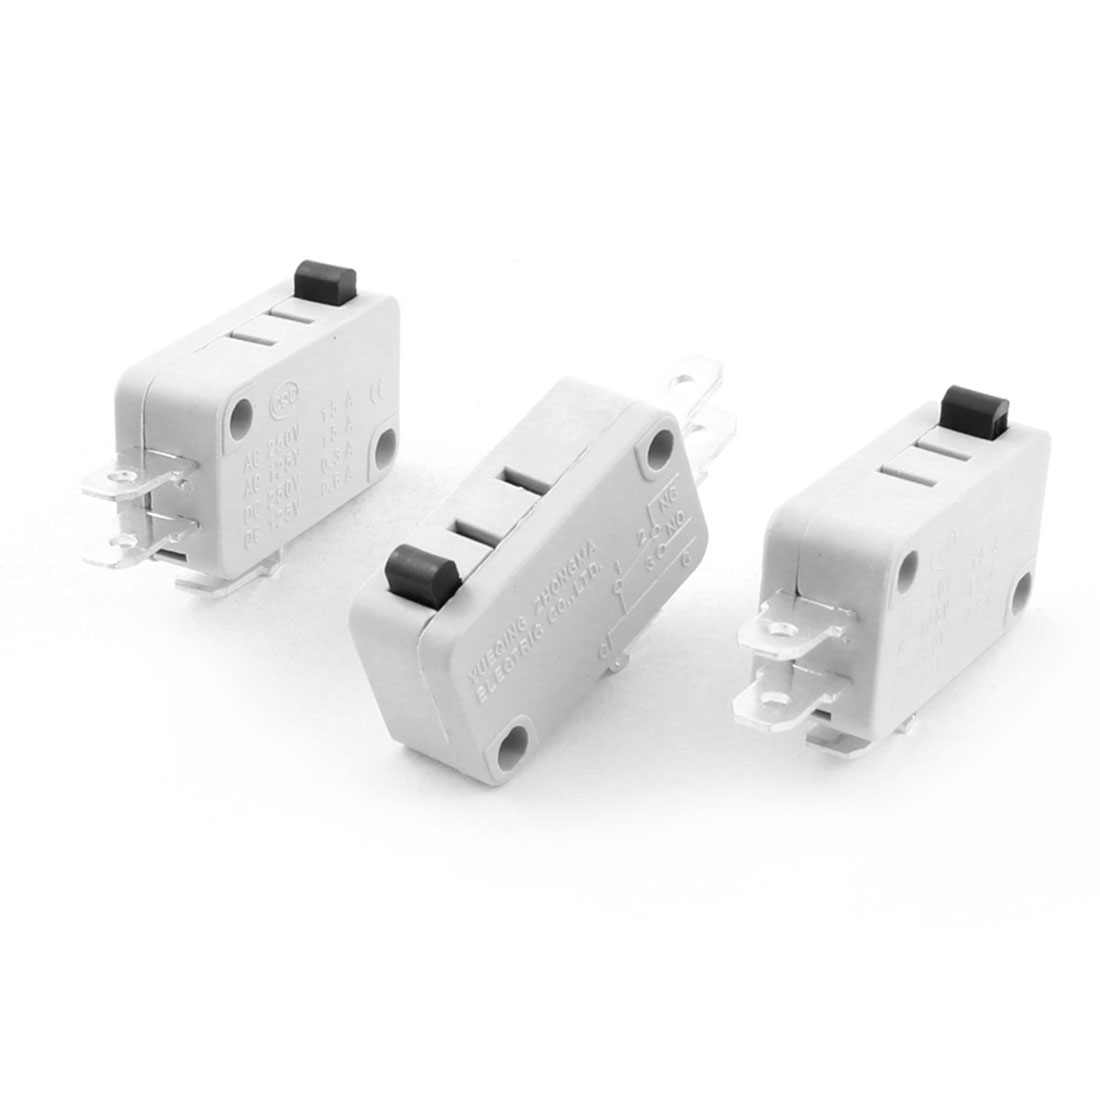 3Pcs AC250V 15A SPDT 1NO+1NC Momentary Push Button Actuator White Plastic Limit Micro Switch